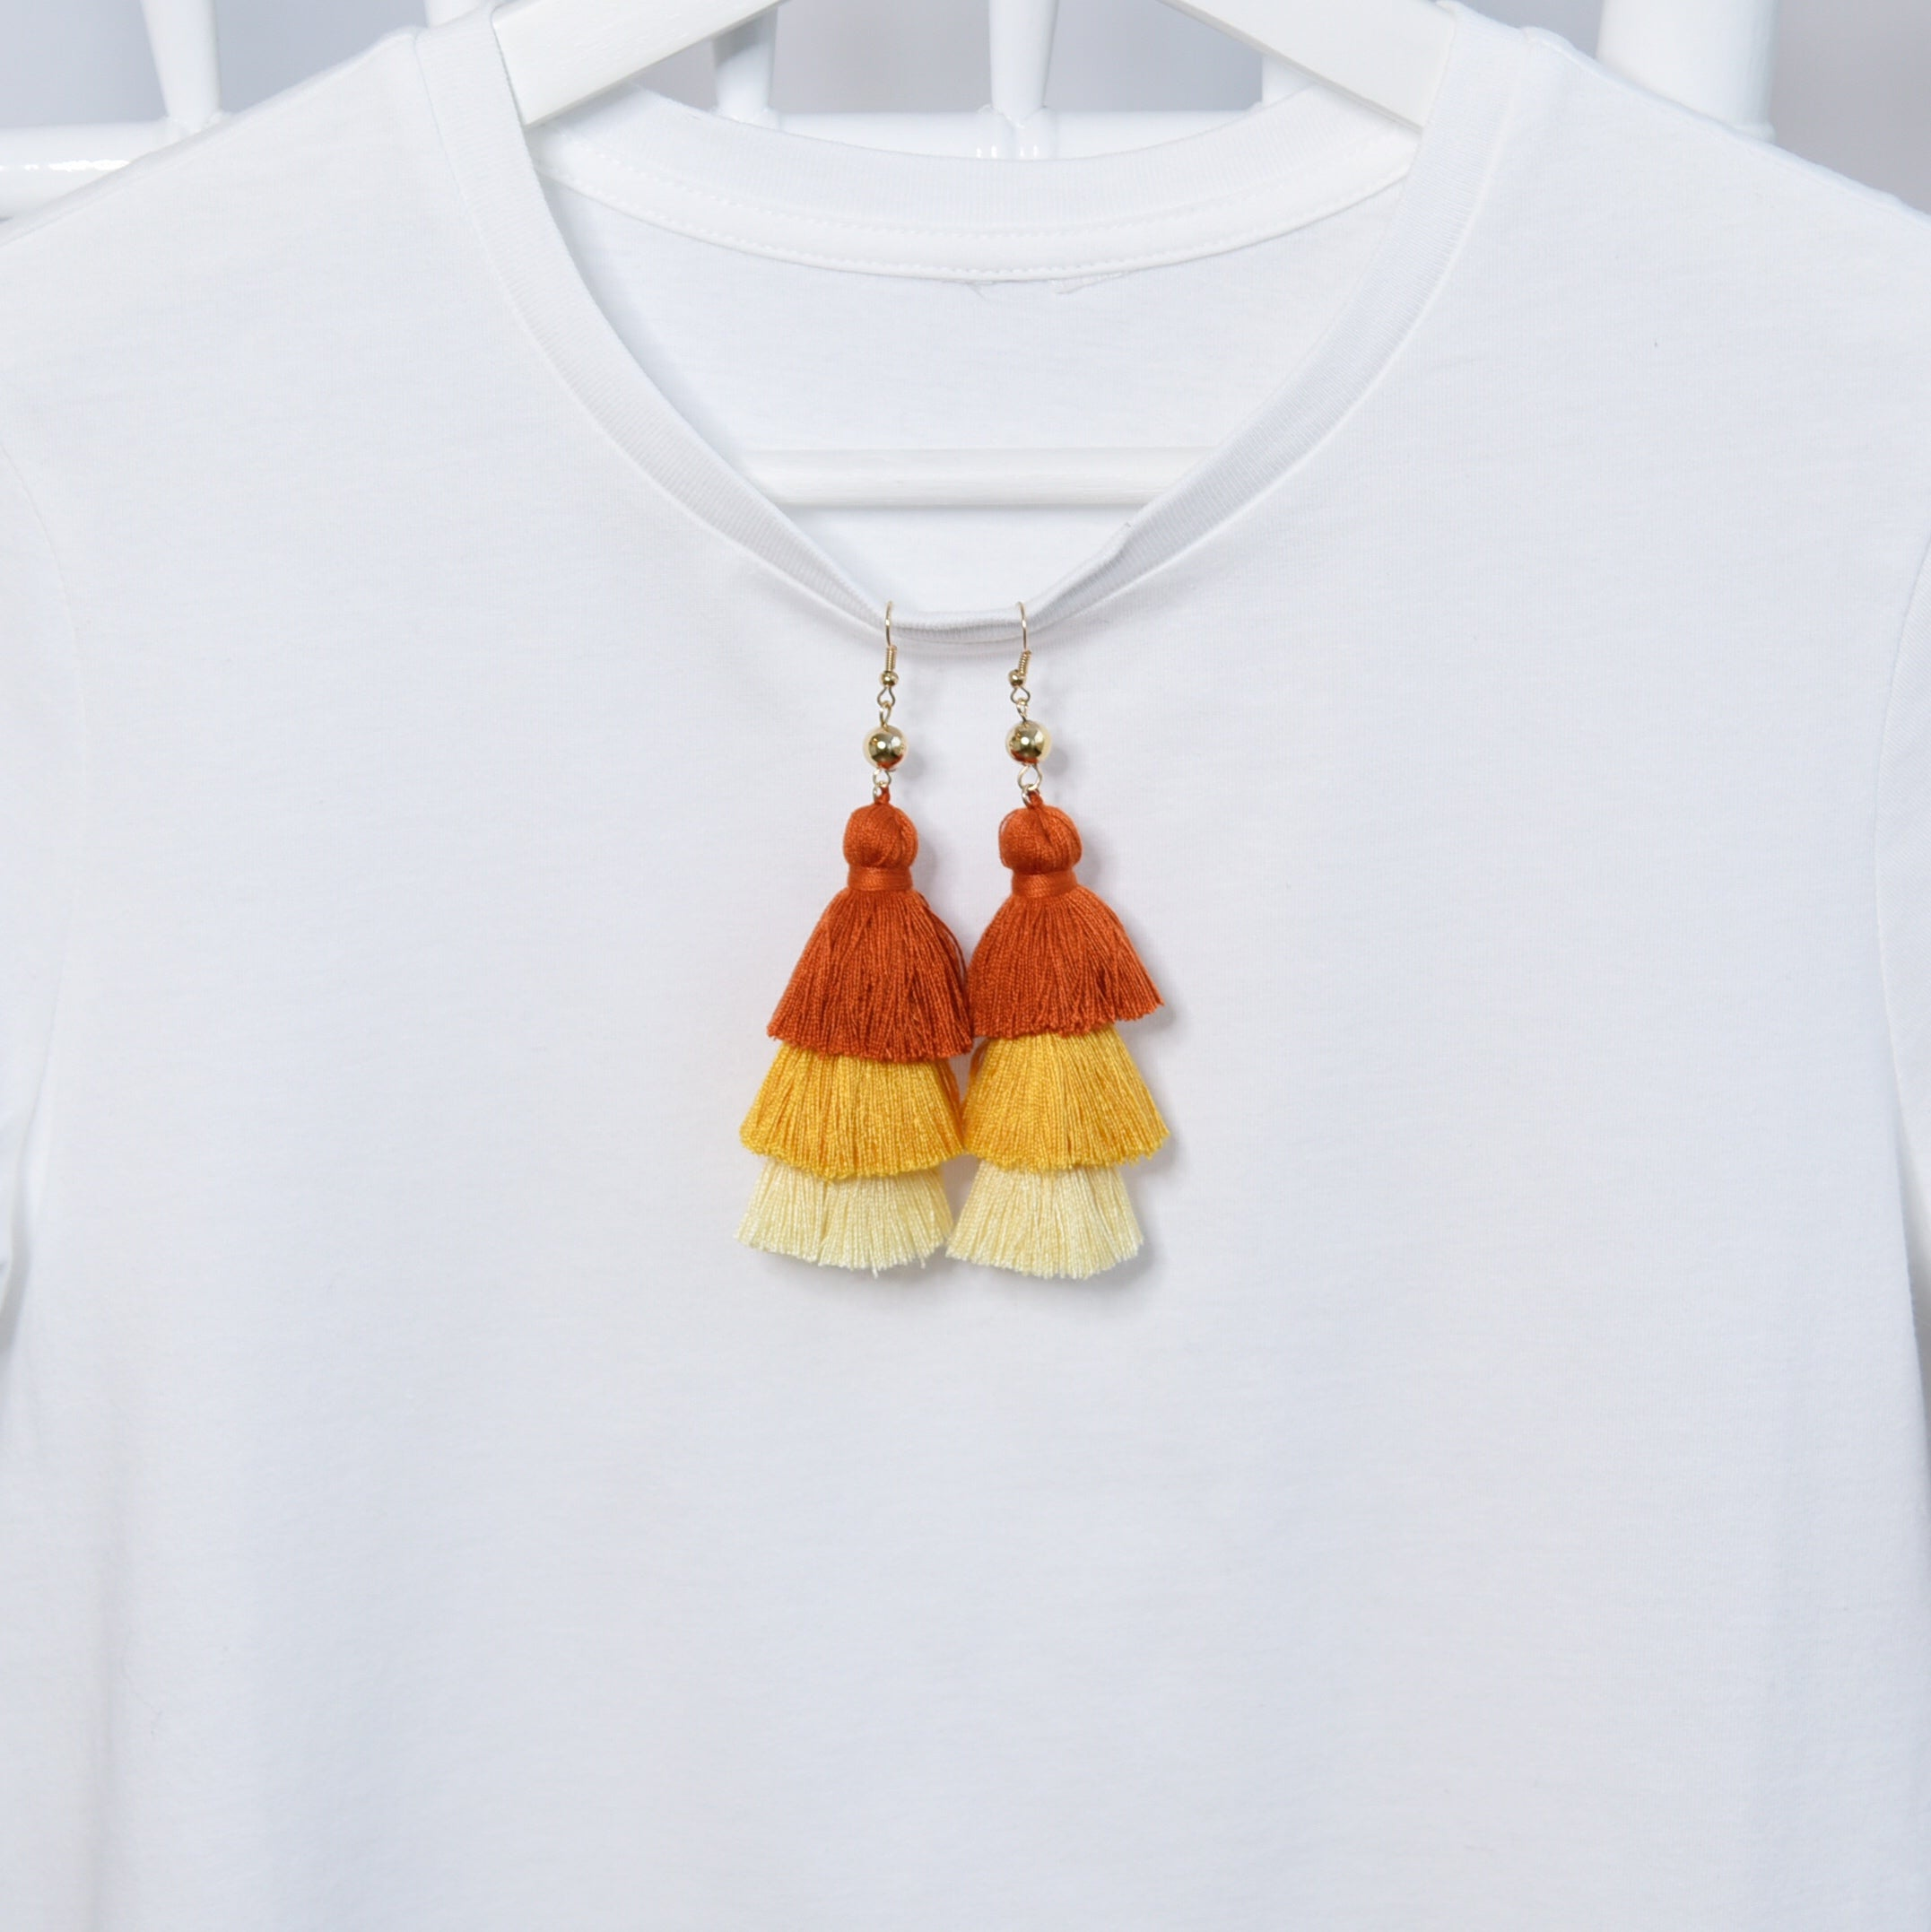 Tassels Orange Lightweight Fashion Statement Earrings